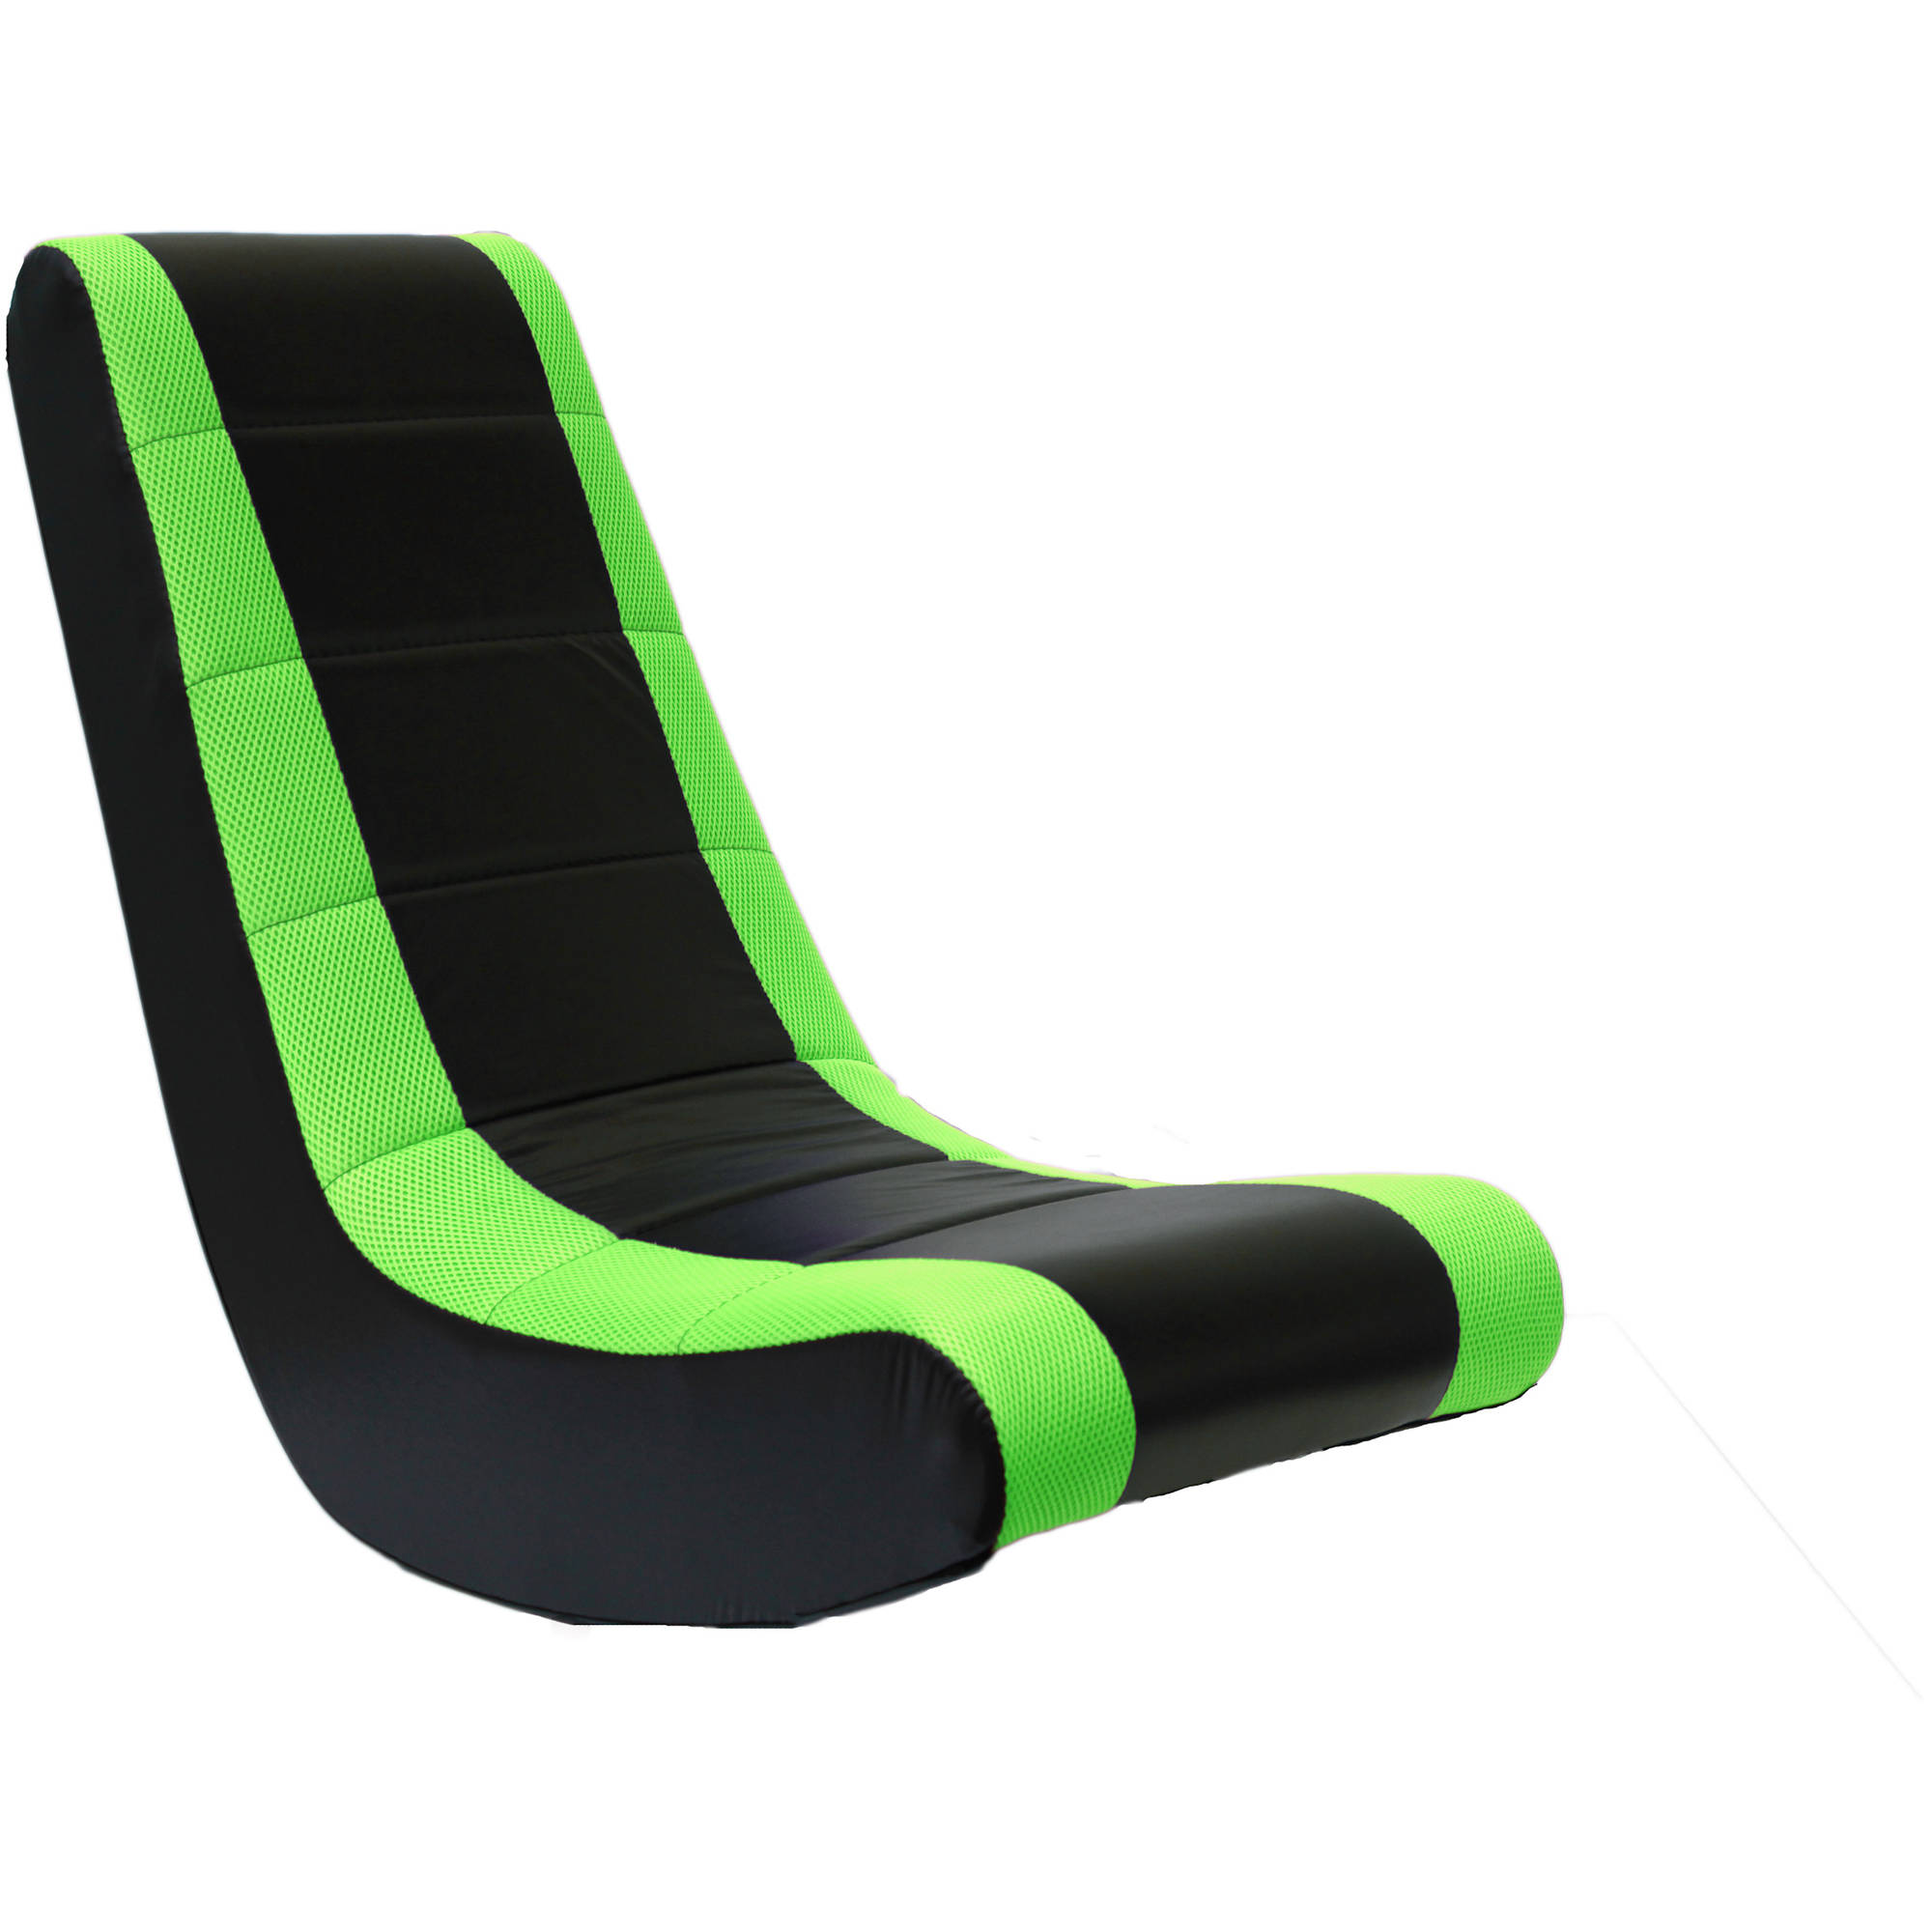 Fabulous Details About Comfy Gaming Chair Rocking For Boys Teens Gamer Kids Adults Floor Neon Green New Ocoug Best Dining Table And Chair Ideas Images Ocougorg